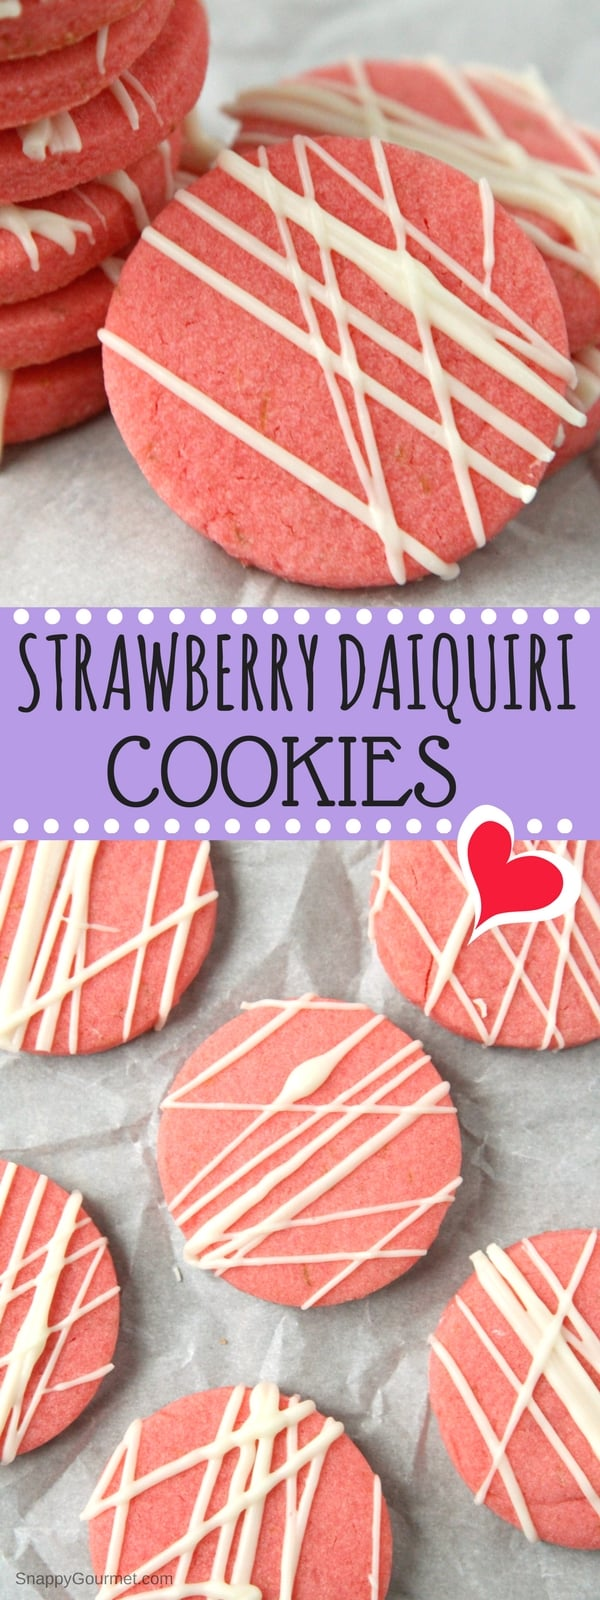 Strawberry Daiquiri Cookies - easy strawberry sugar cookie recipe with strawberry, lime, and rum! SnappyGourmet.com